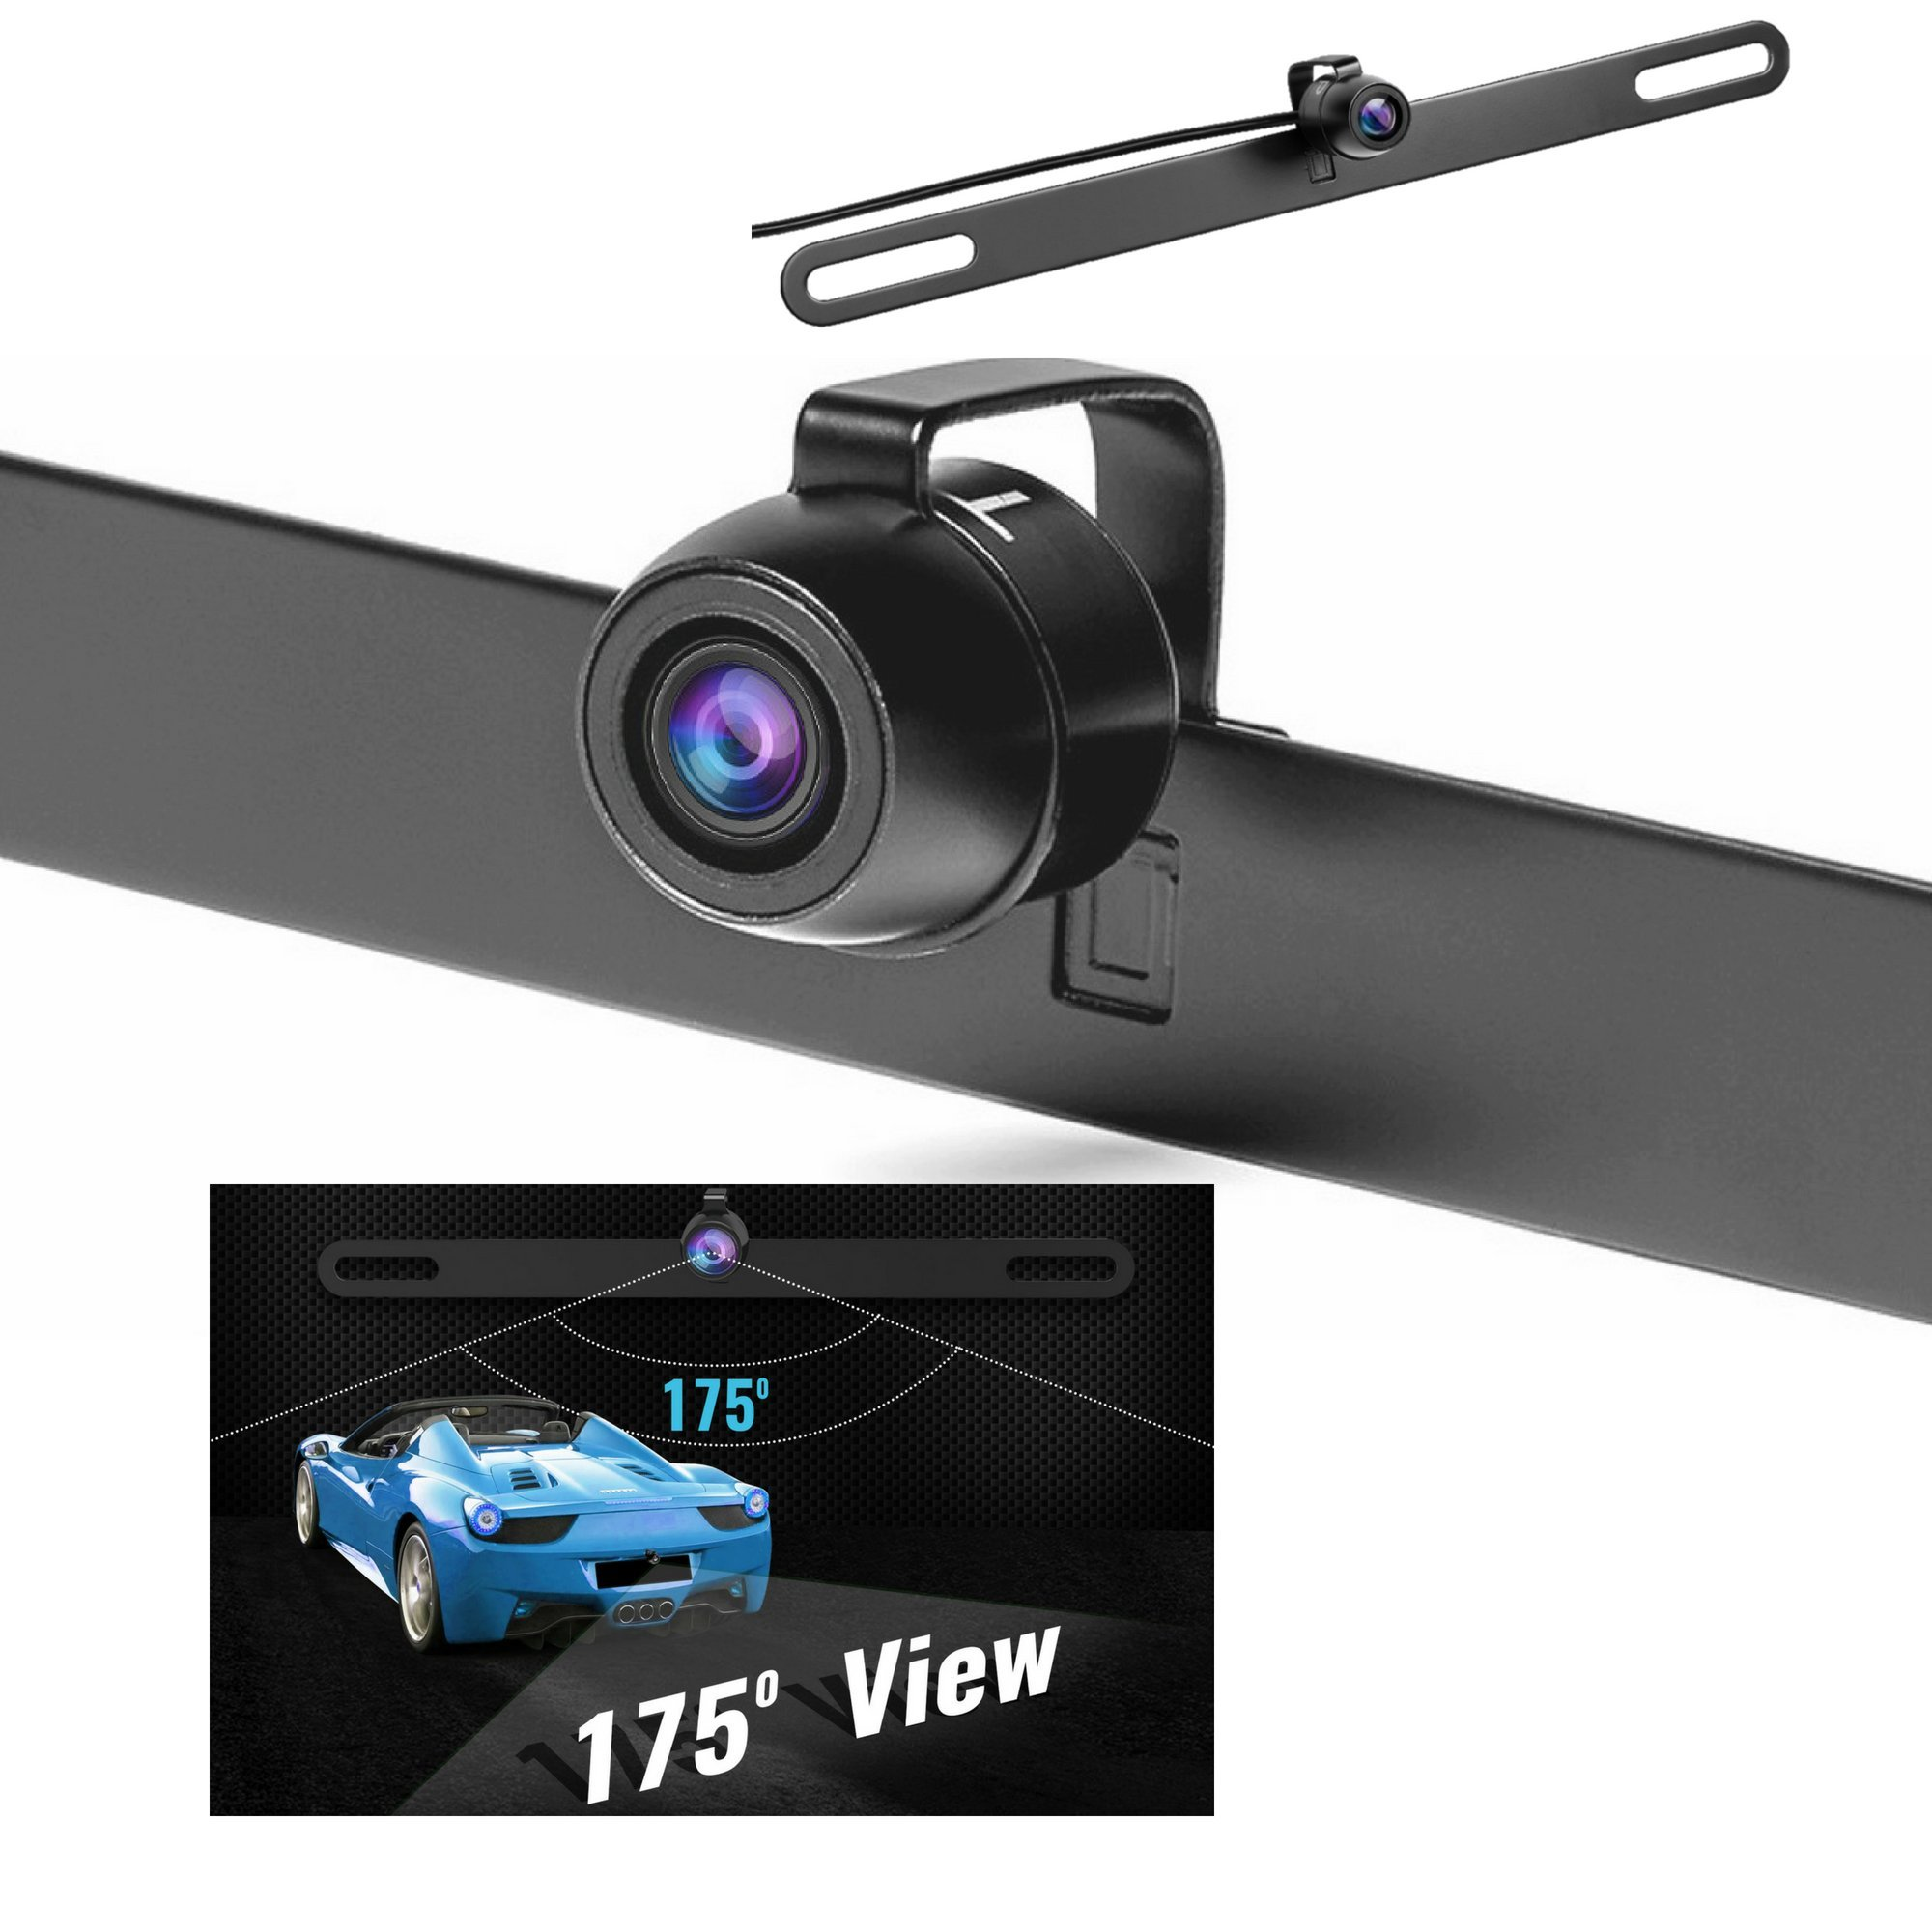 Hidden License Plate Backup Camera, Upgraded Rear View Camera With 2 Install Method, Best For Trucks, Cars, TTP-C13B Reverse Camera- IP68 Waterproof & Night Vision Back Up Car Camera